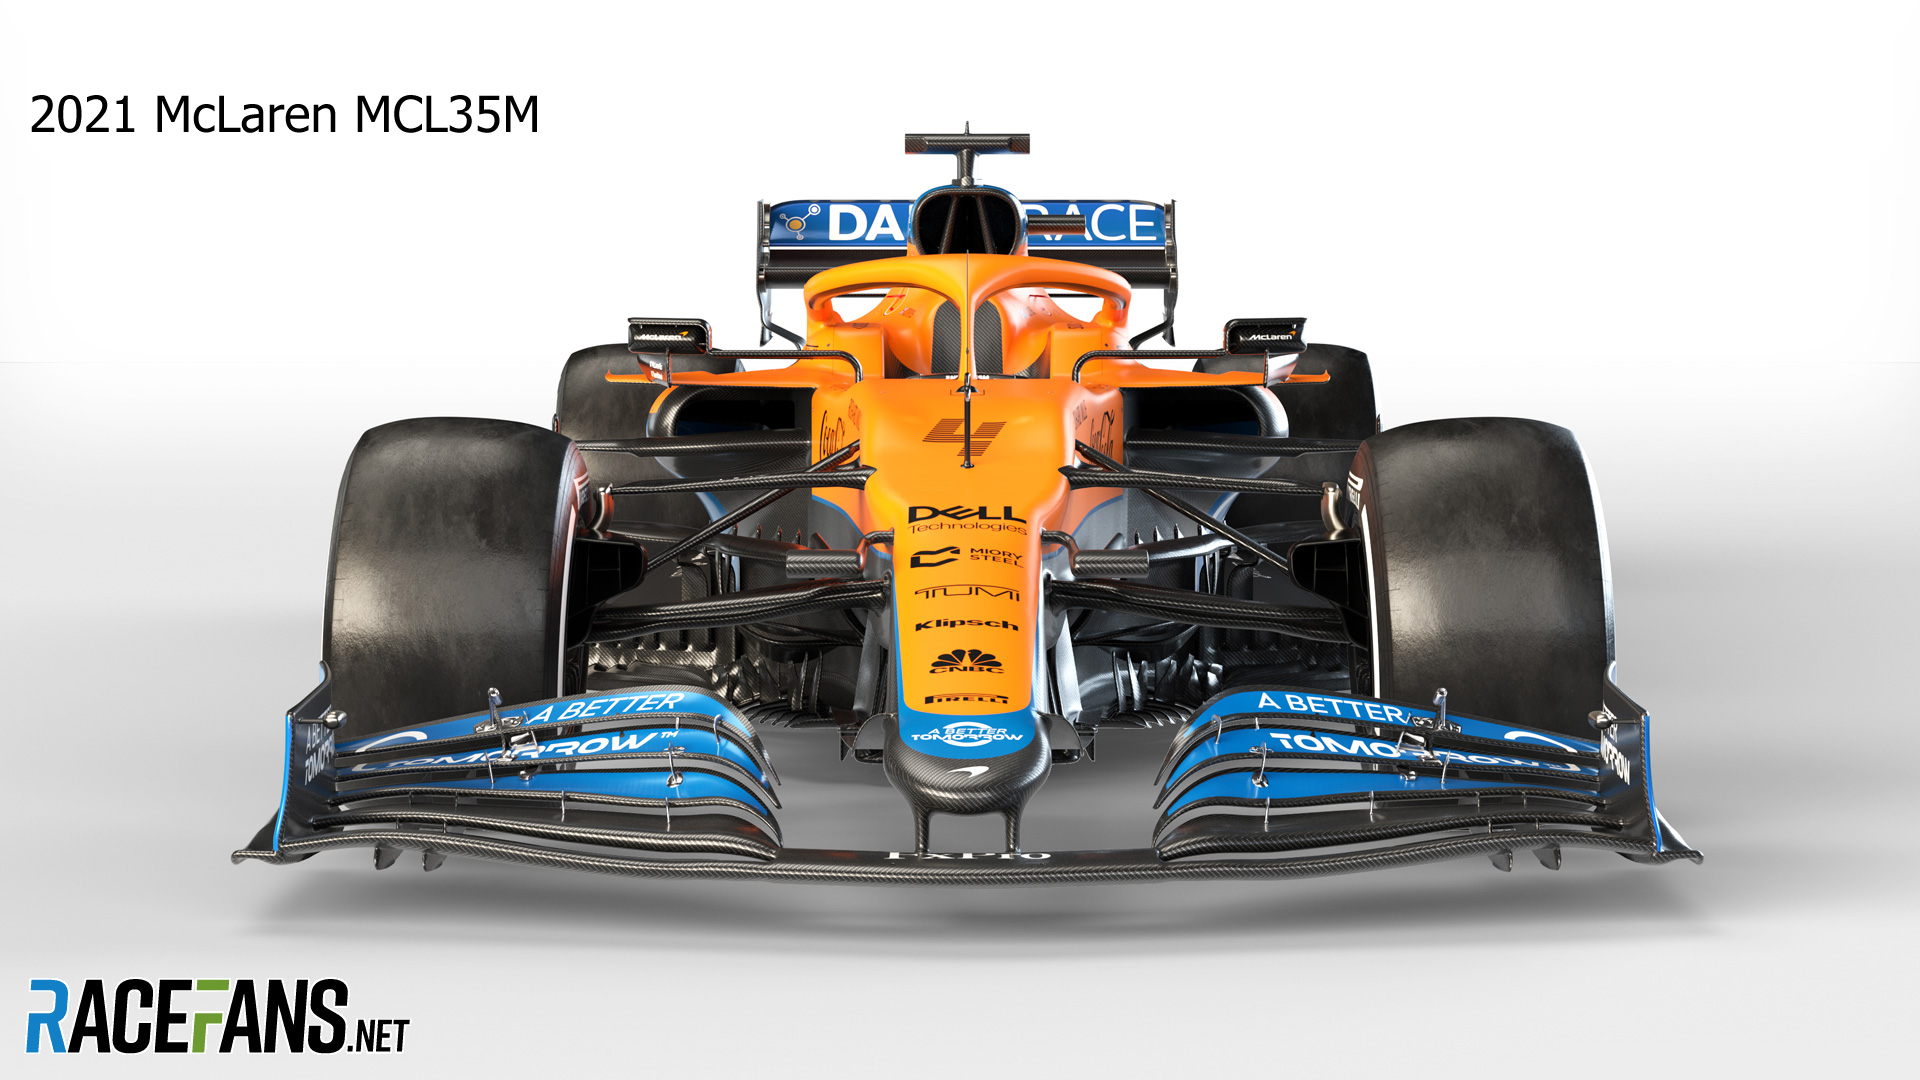 Interactive Compare The New Mclaren Mercedes Mcl35m With Last Year S Car Racefans